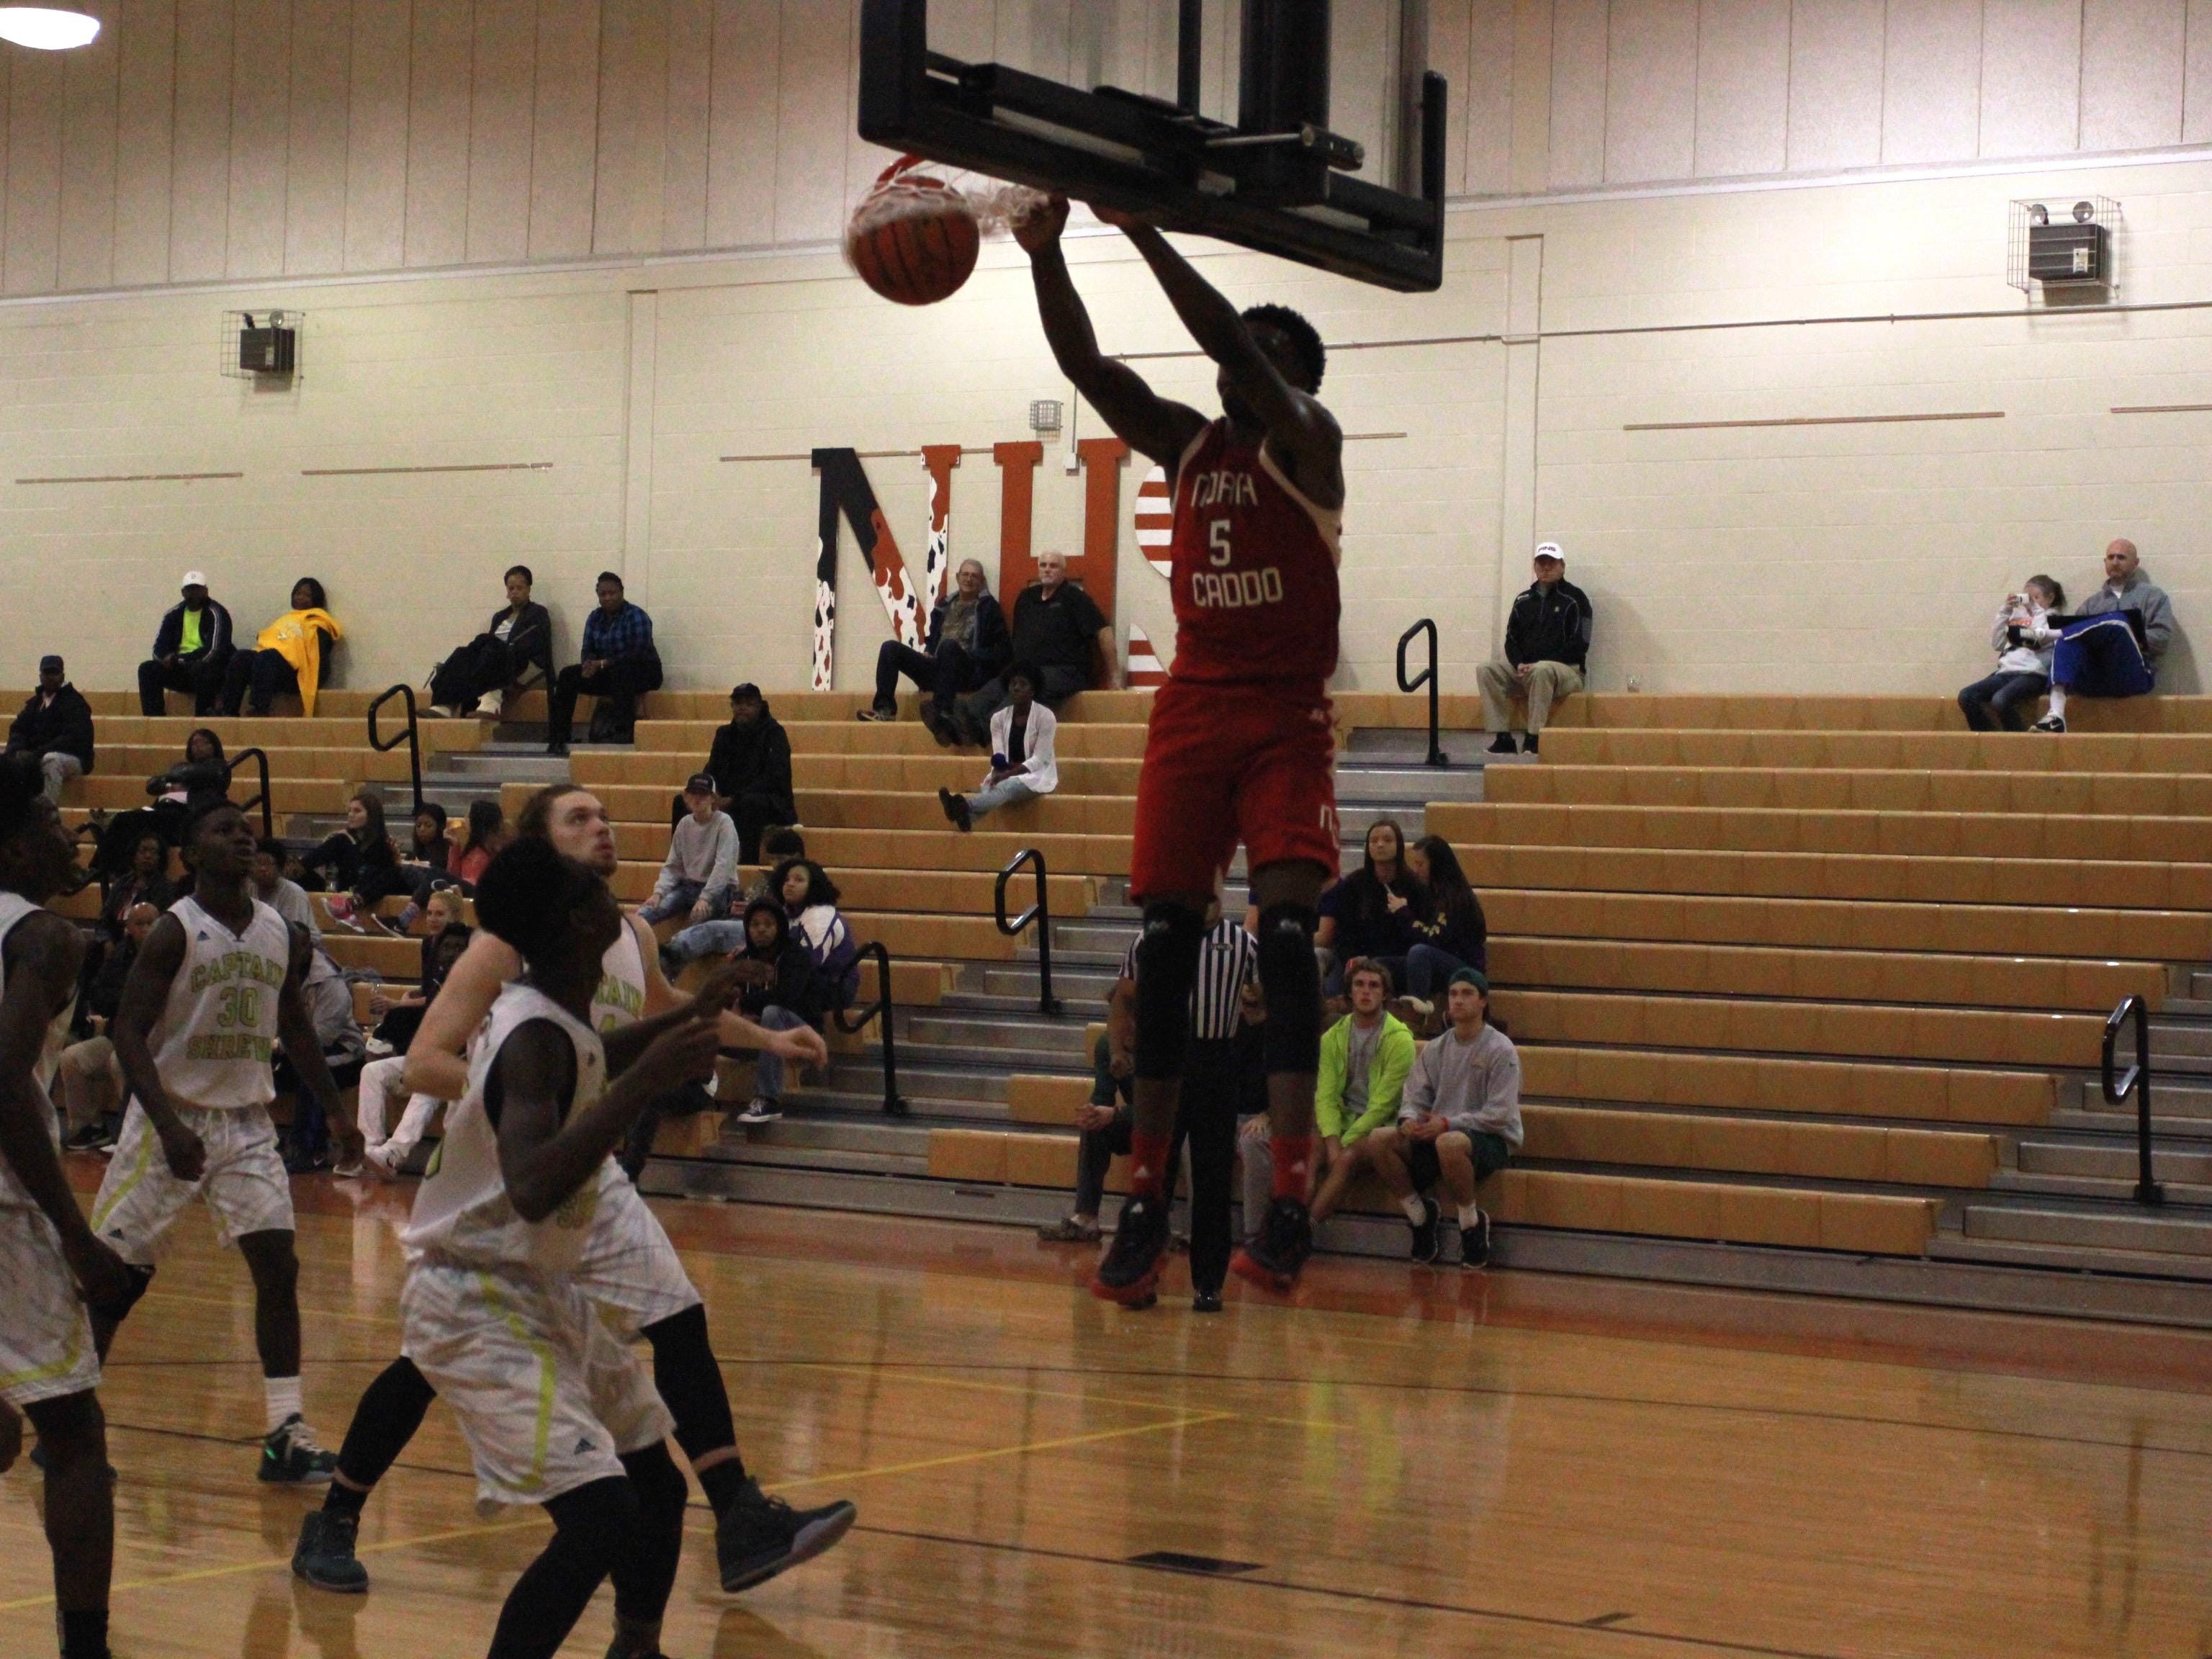 Robert Williams(5) slam dunks two points in for North Caddo against Captain Shreve Thursday night at Northwood High School in Blanchard.